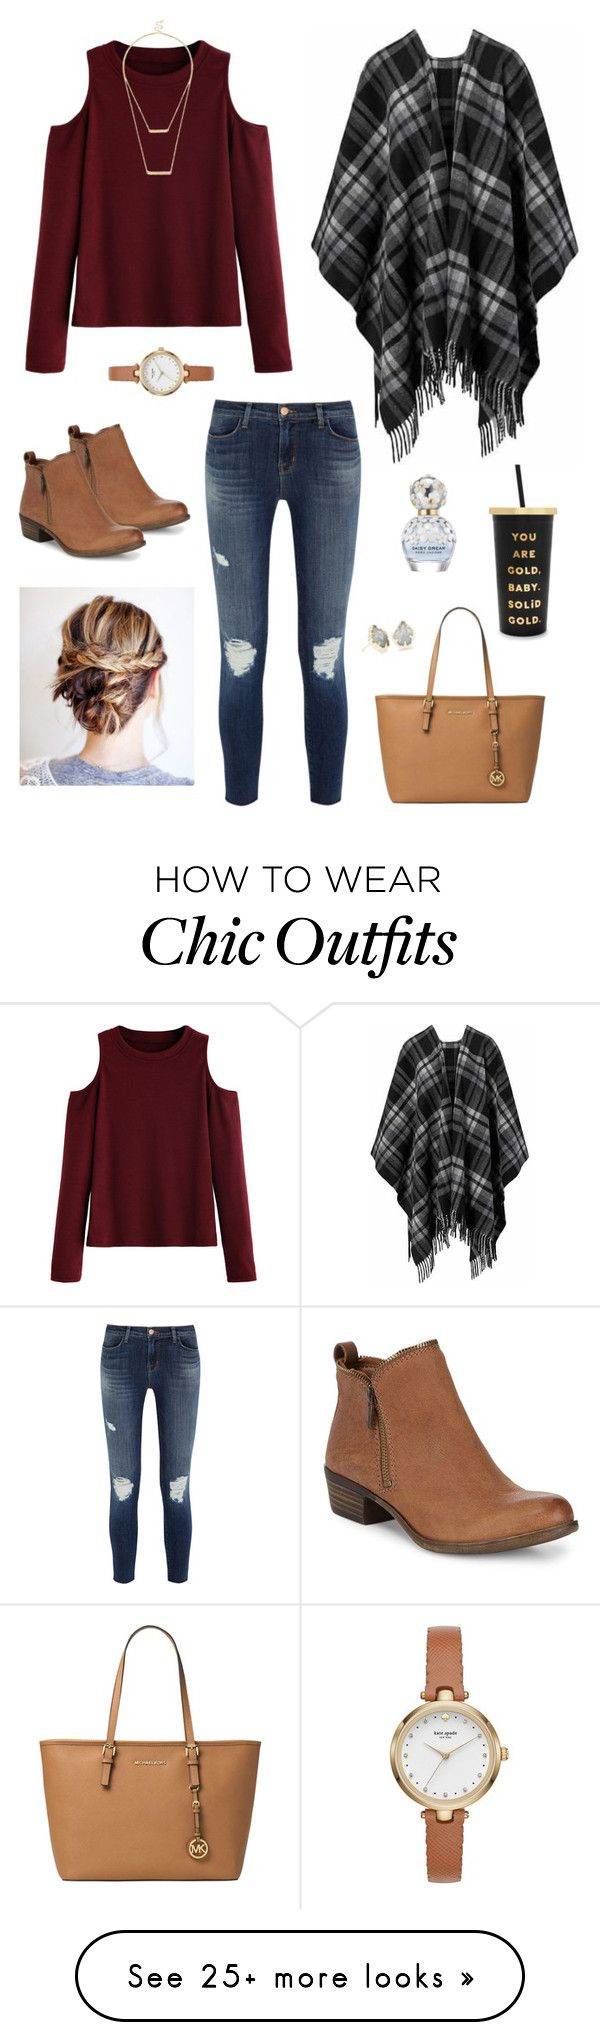 """""""More of a fall look but I still love it """" by yoitsrachel on Polyvore featuring ban.do, WithChic, J Brand, MICHAEL Michael Kors, Lucky Brand, Kate Spade, Sole Society, Kendra Scott and Marc Jacobs"""